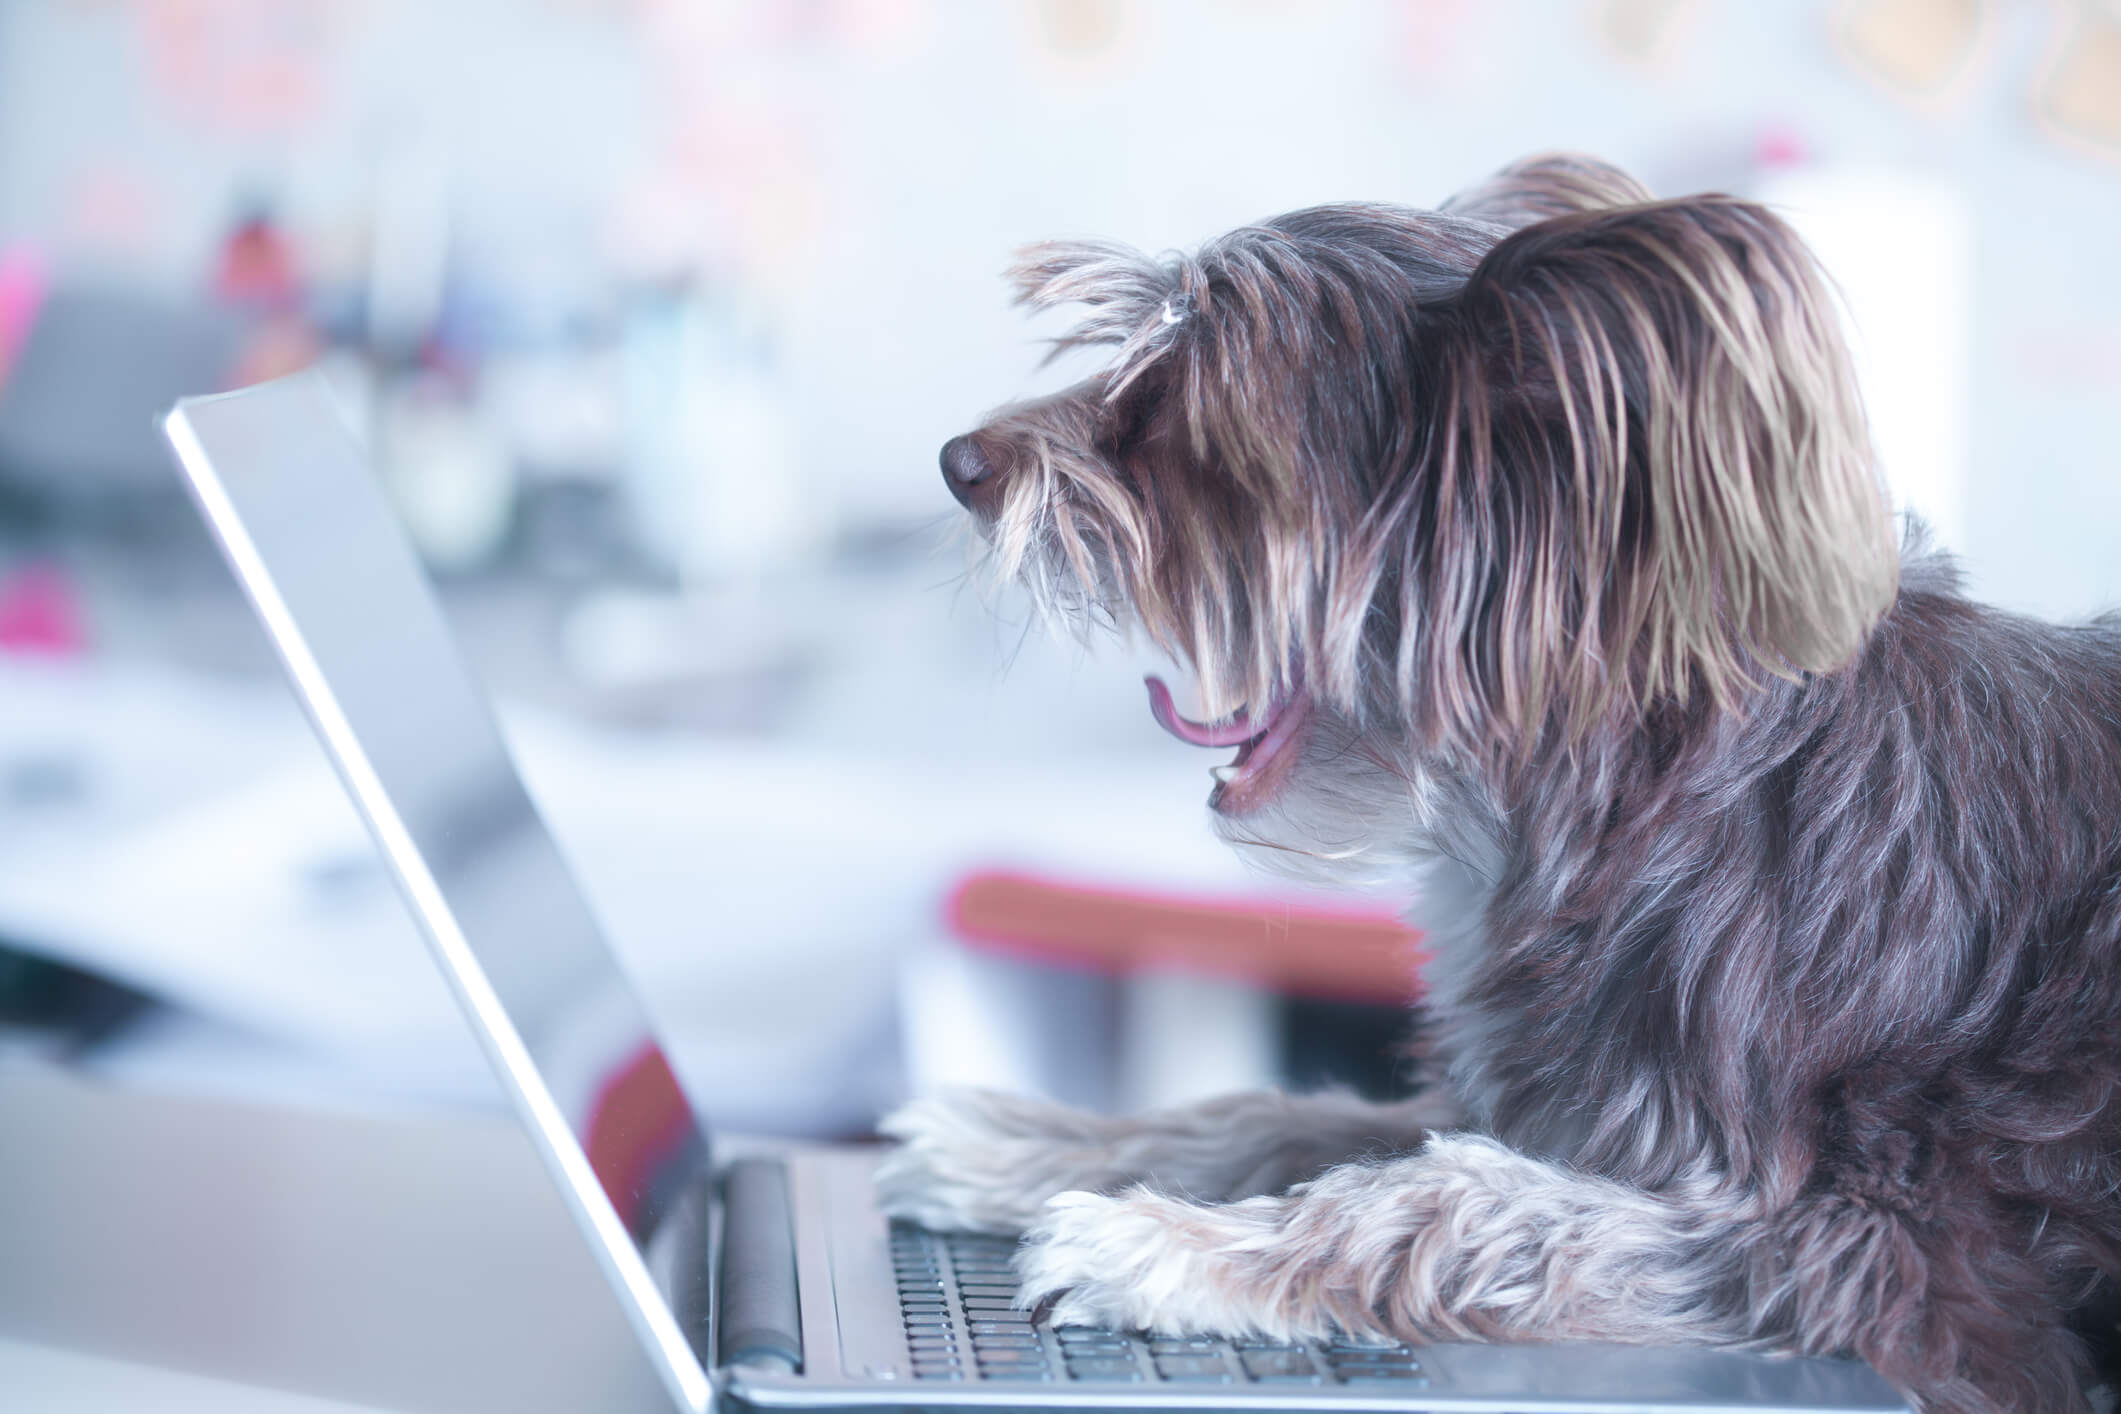 Dog typing on a laptop